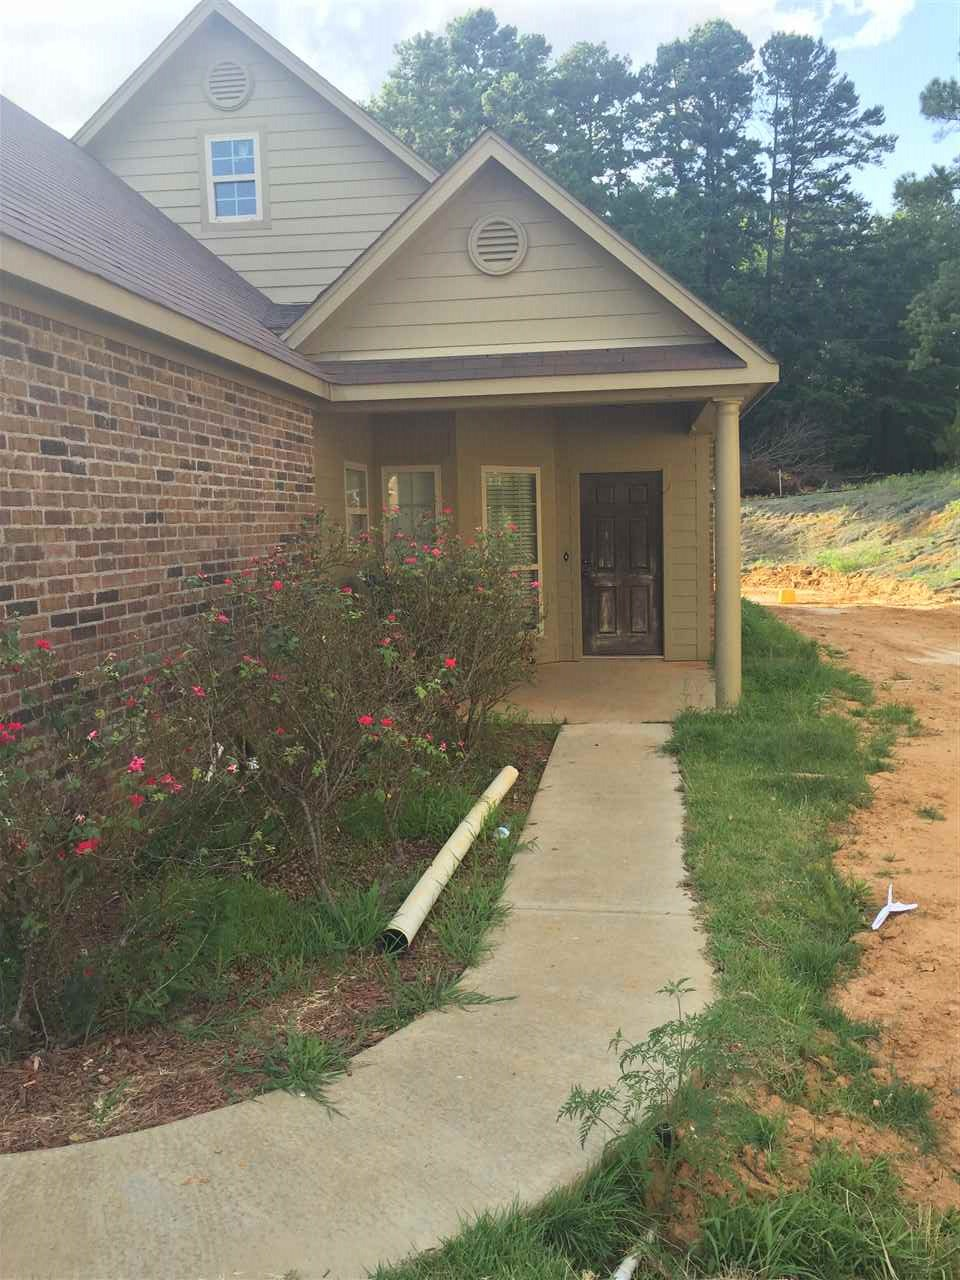 Lovely brick home in SHISD! Built in 2010 this 3/2.5/2 car garage would be fabulous for any family or would also make for great investment property! Call today to schedule your showing!